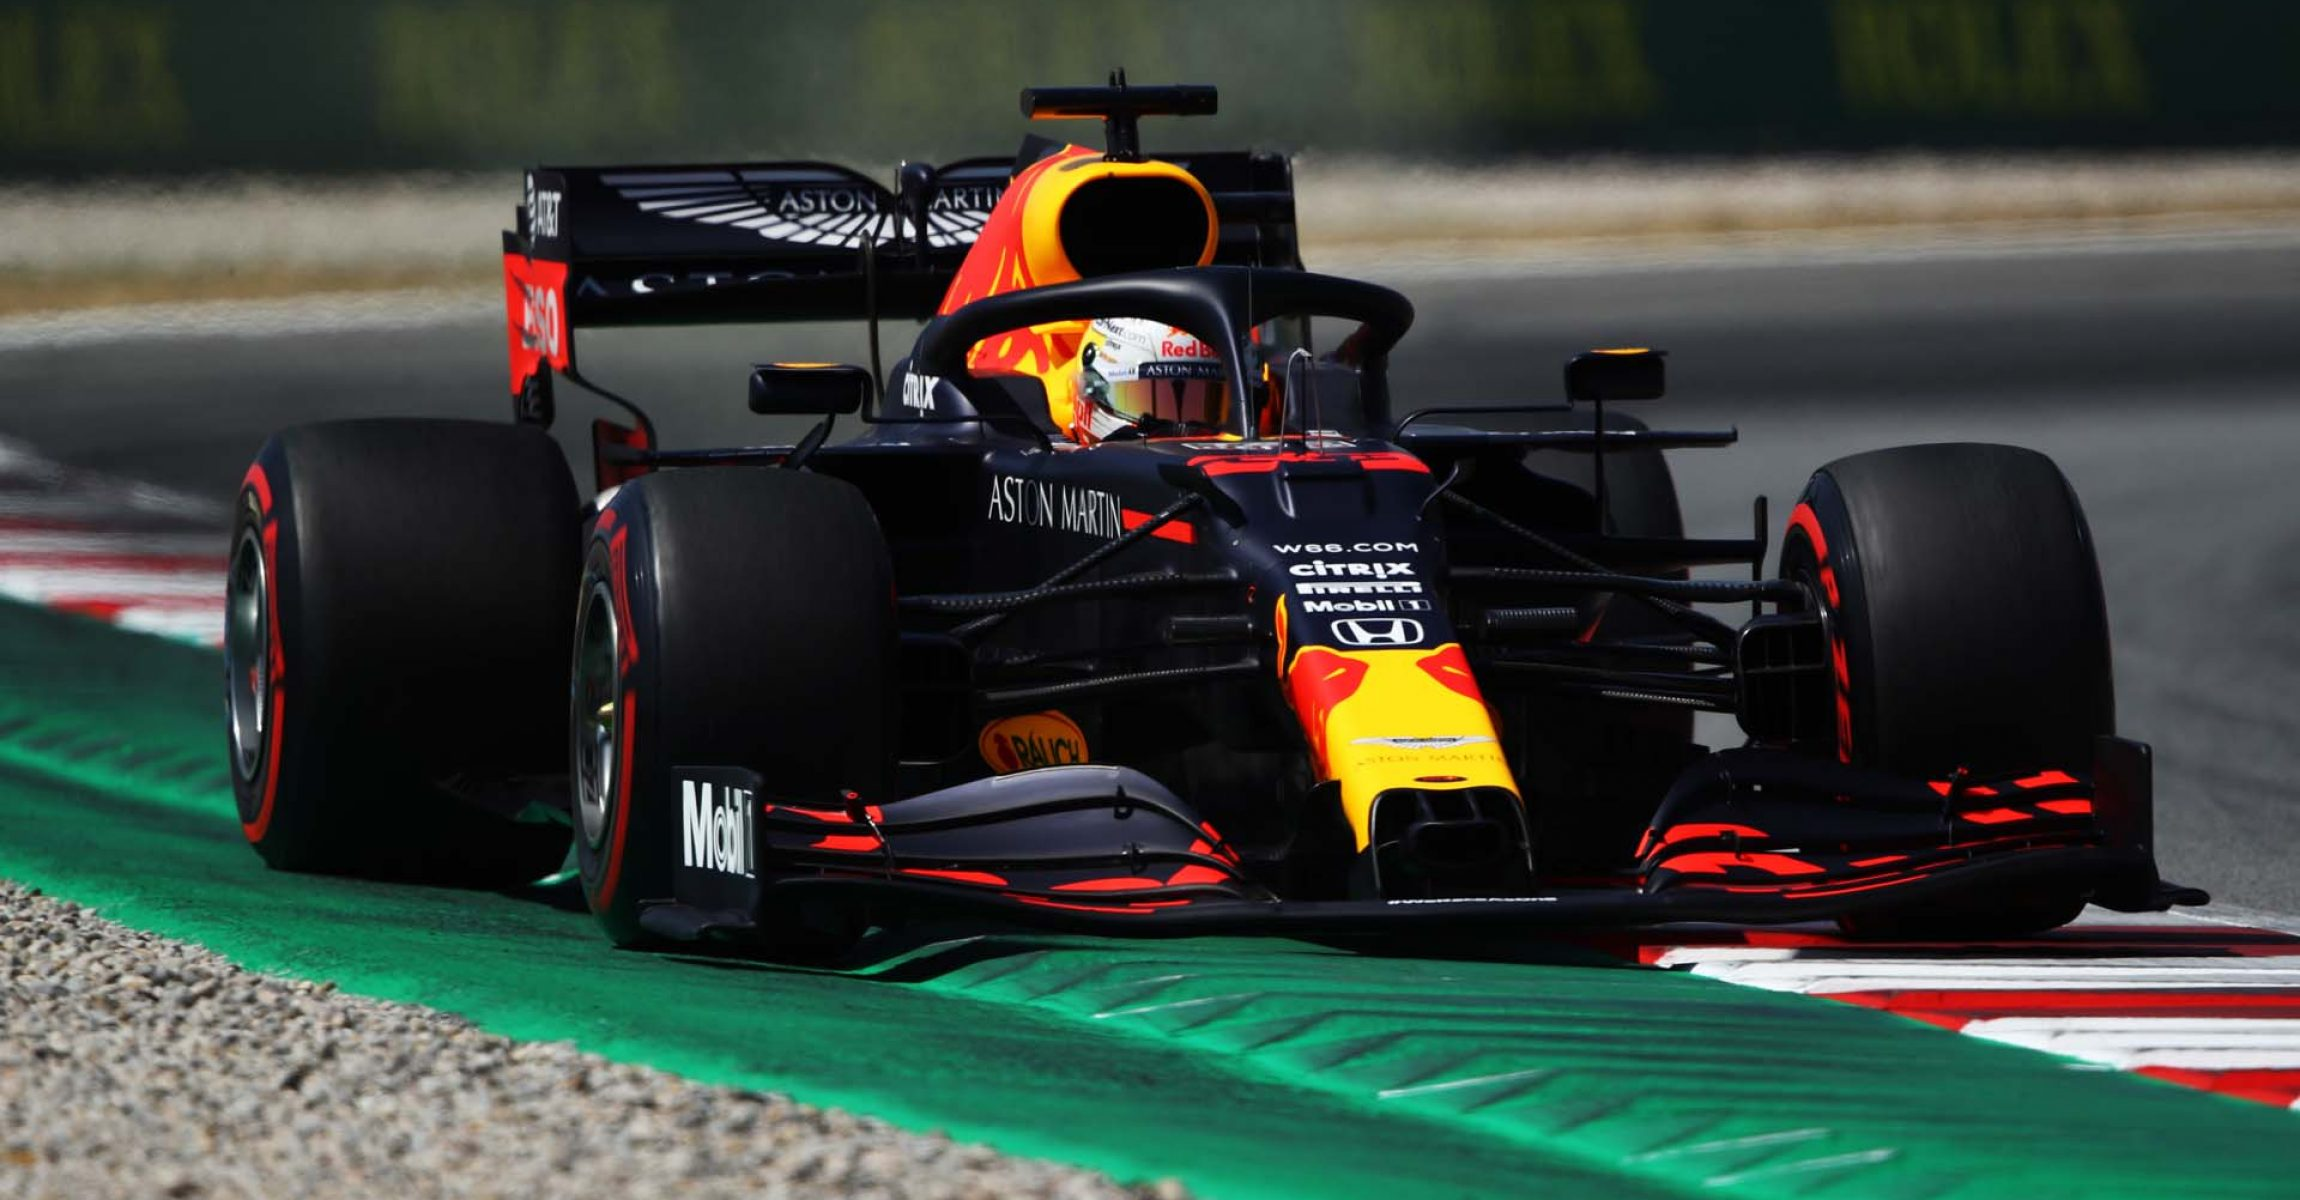 BARCELONA, SPAIN - AUGUST 15: Max Verstappen of the Netherlands driving the (33) Aston Martin Red Bull Racing RB16 on track during final practice for the F1 Grand Prix of Spain at Circuit de Barcelona-Catalunya on August 15, 2020 in Barcelona, Spain. (Photo by Bryn Lennon/Getty Images)